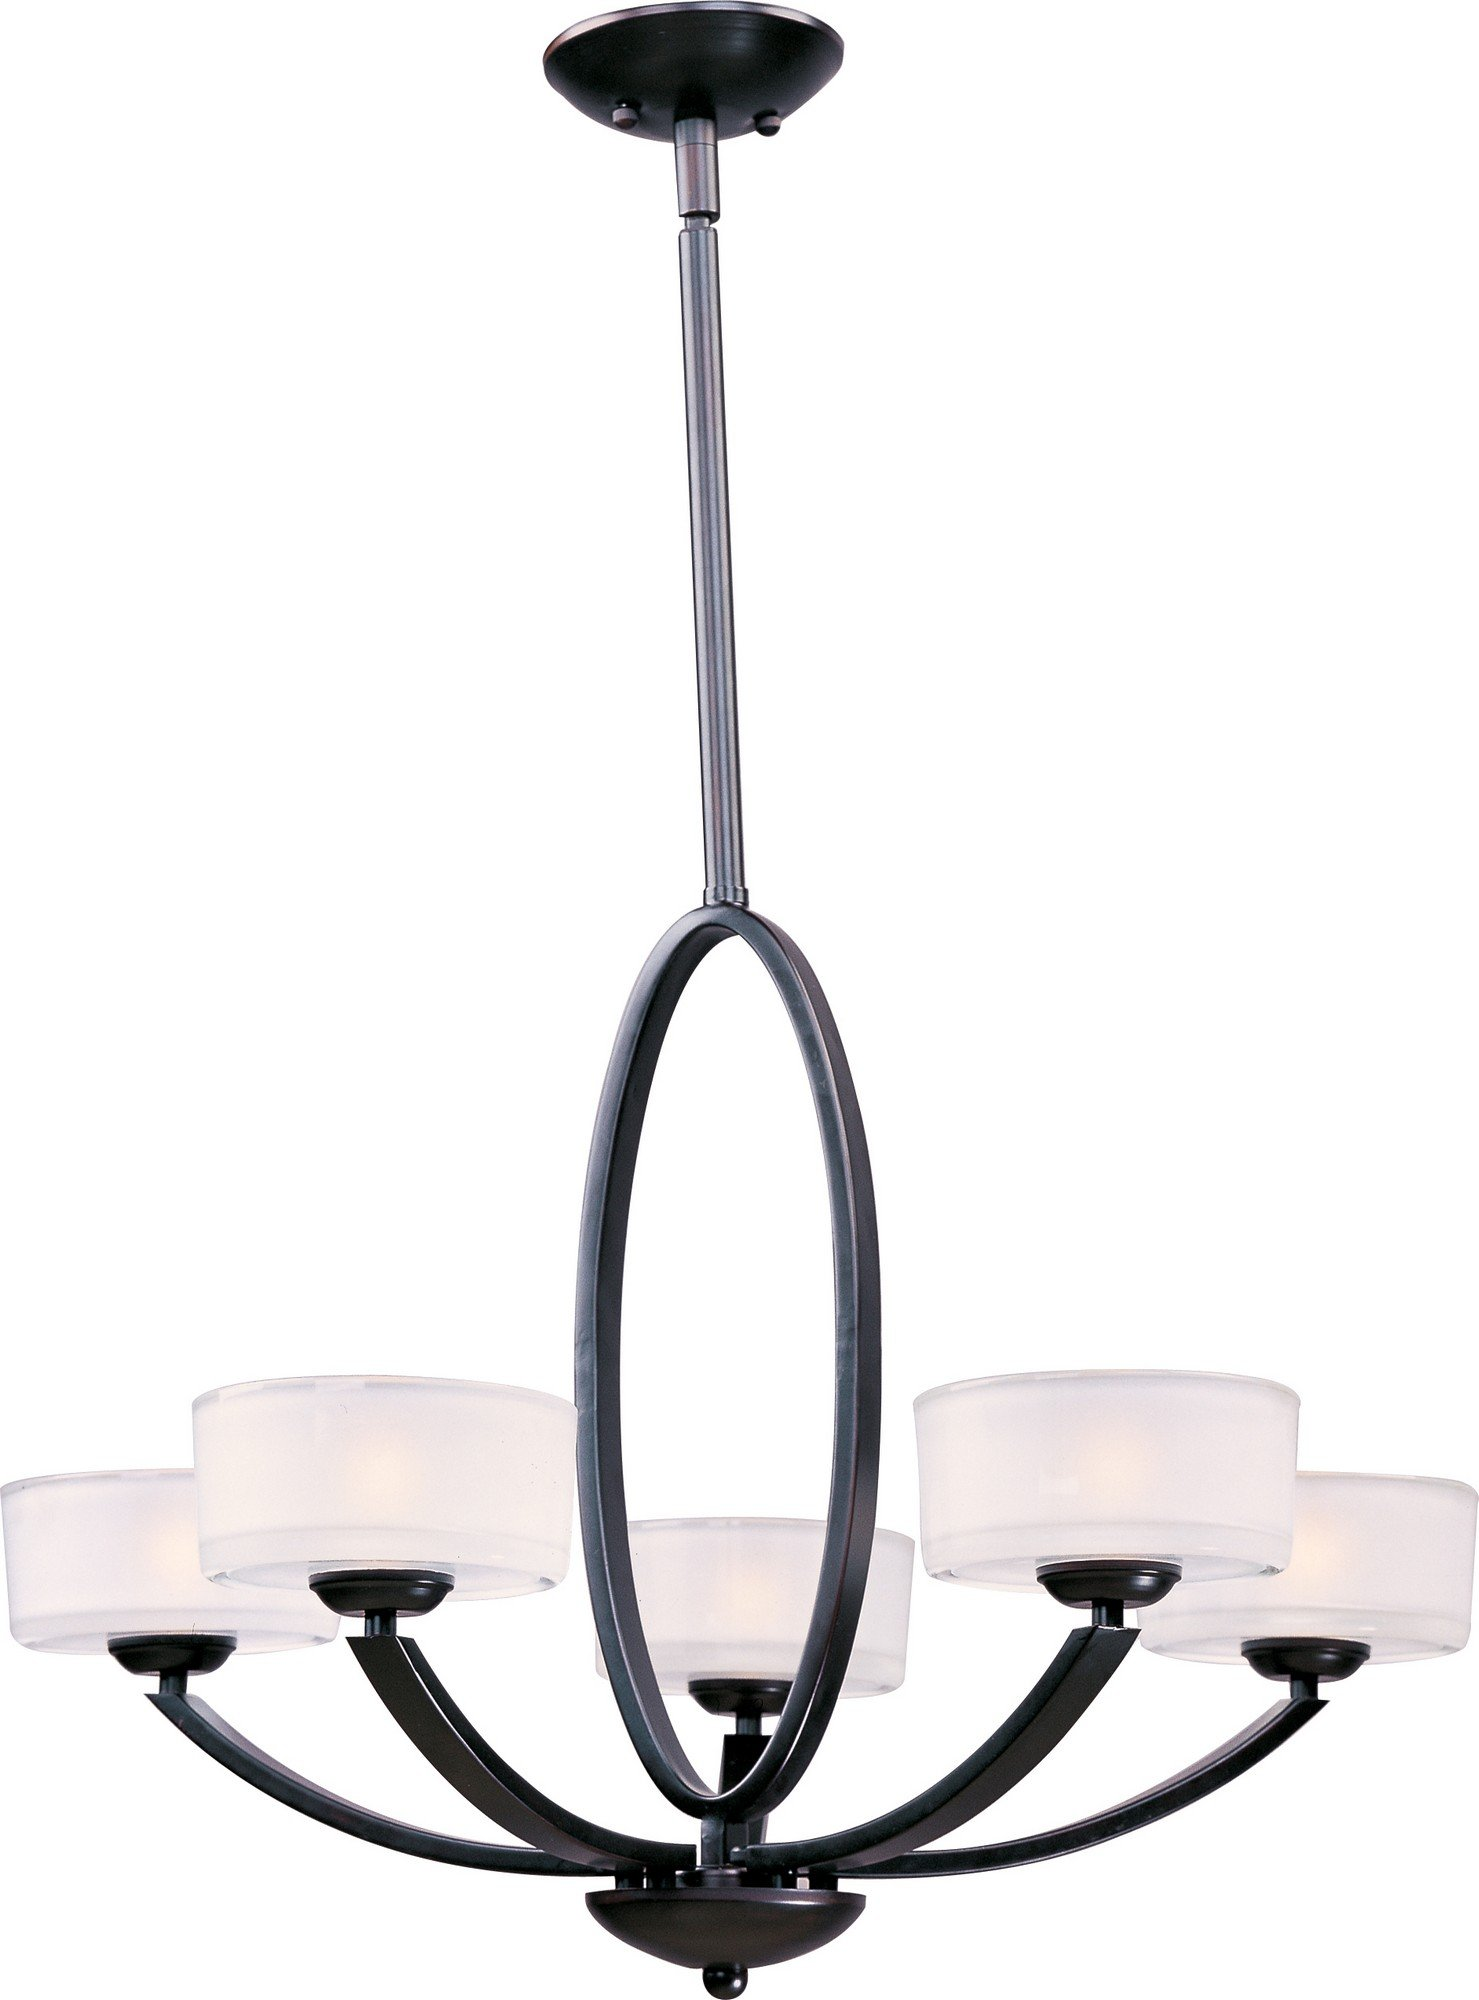 Maxim 19045FTOI Elle 5-Light Chandelier, Oil Rubbed Bronze Finish, Frosted Glass, G9 Frost Xenon Bulb , 13W Max., Wet Safety Rating, 2700K Color Temp, Glass Shade Material, 900 Rated Lumens